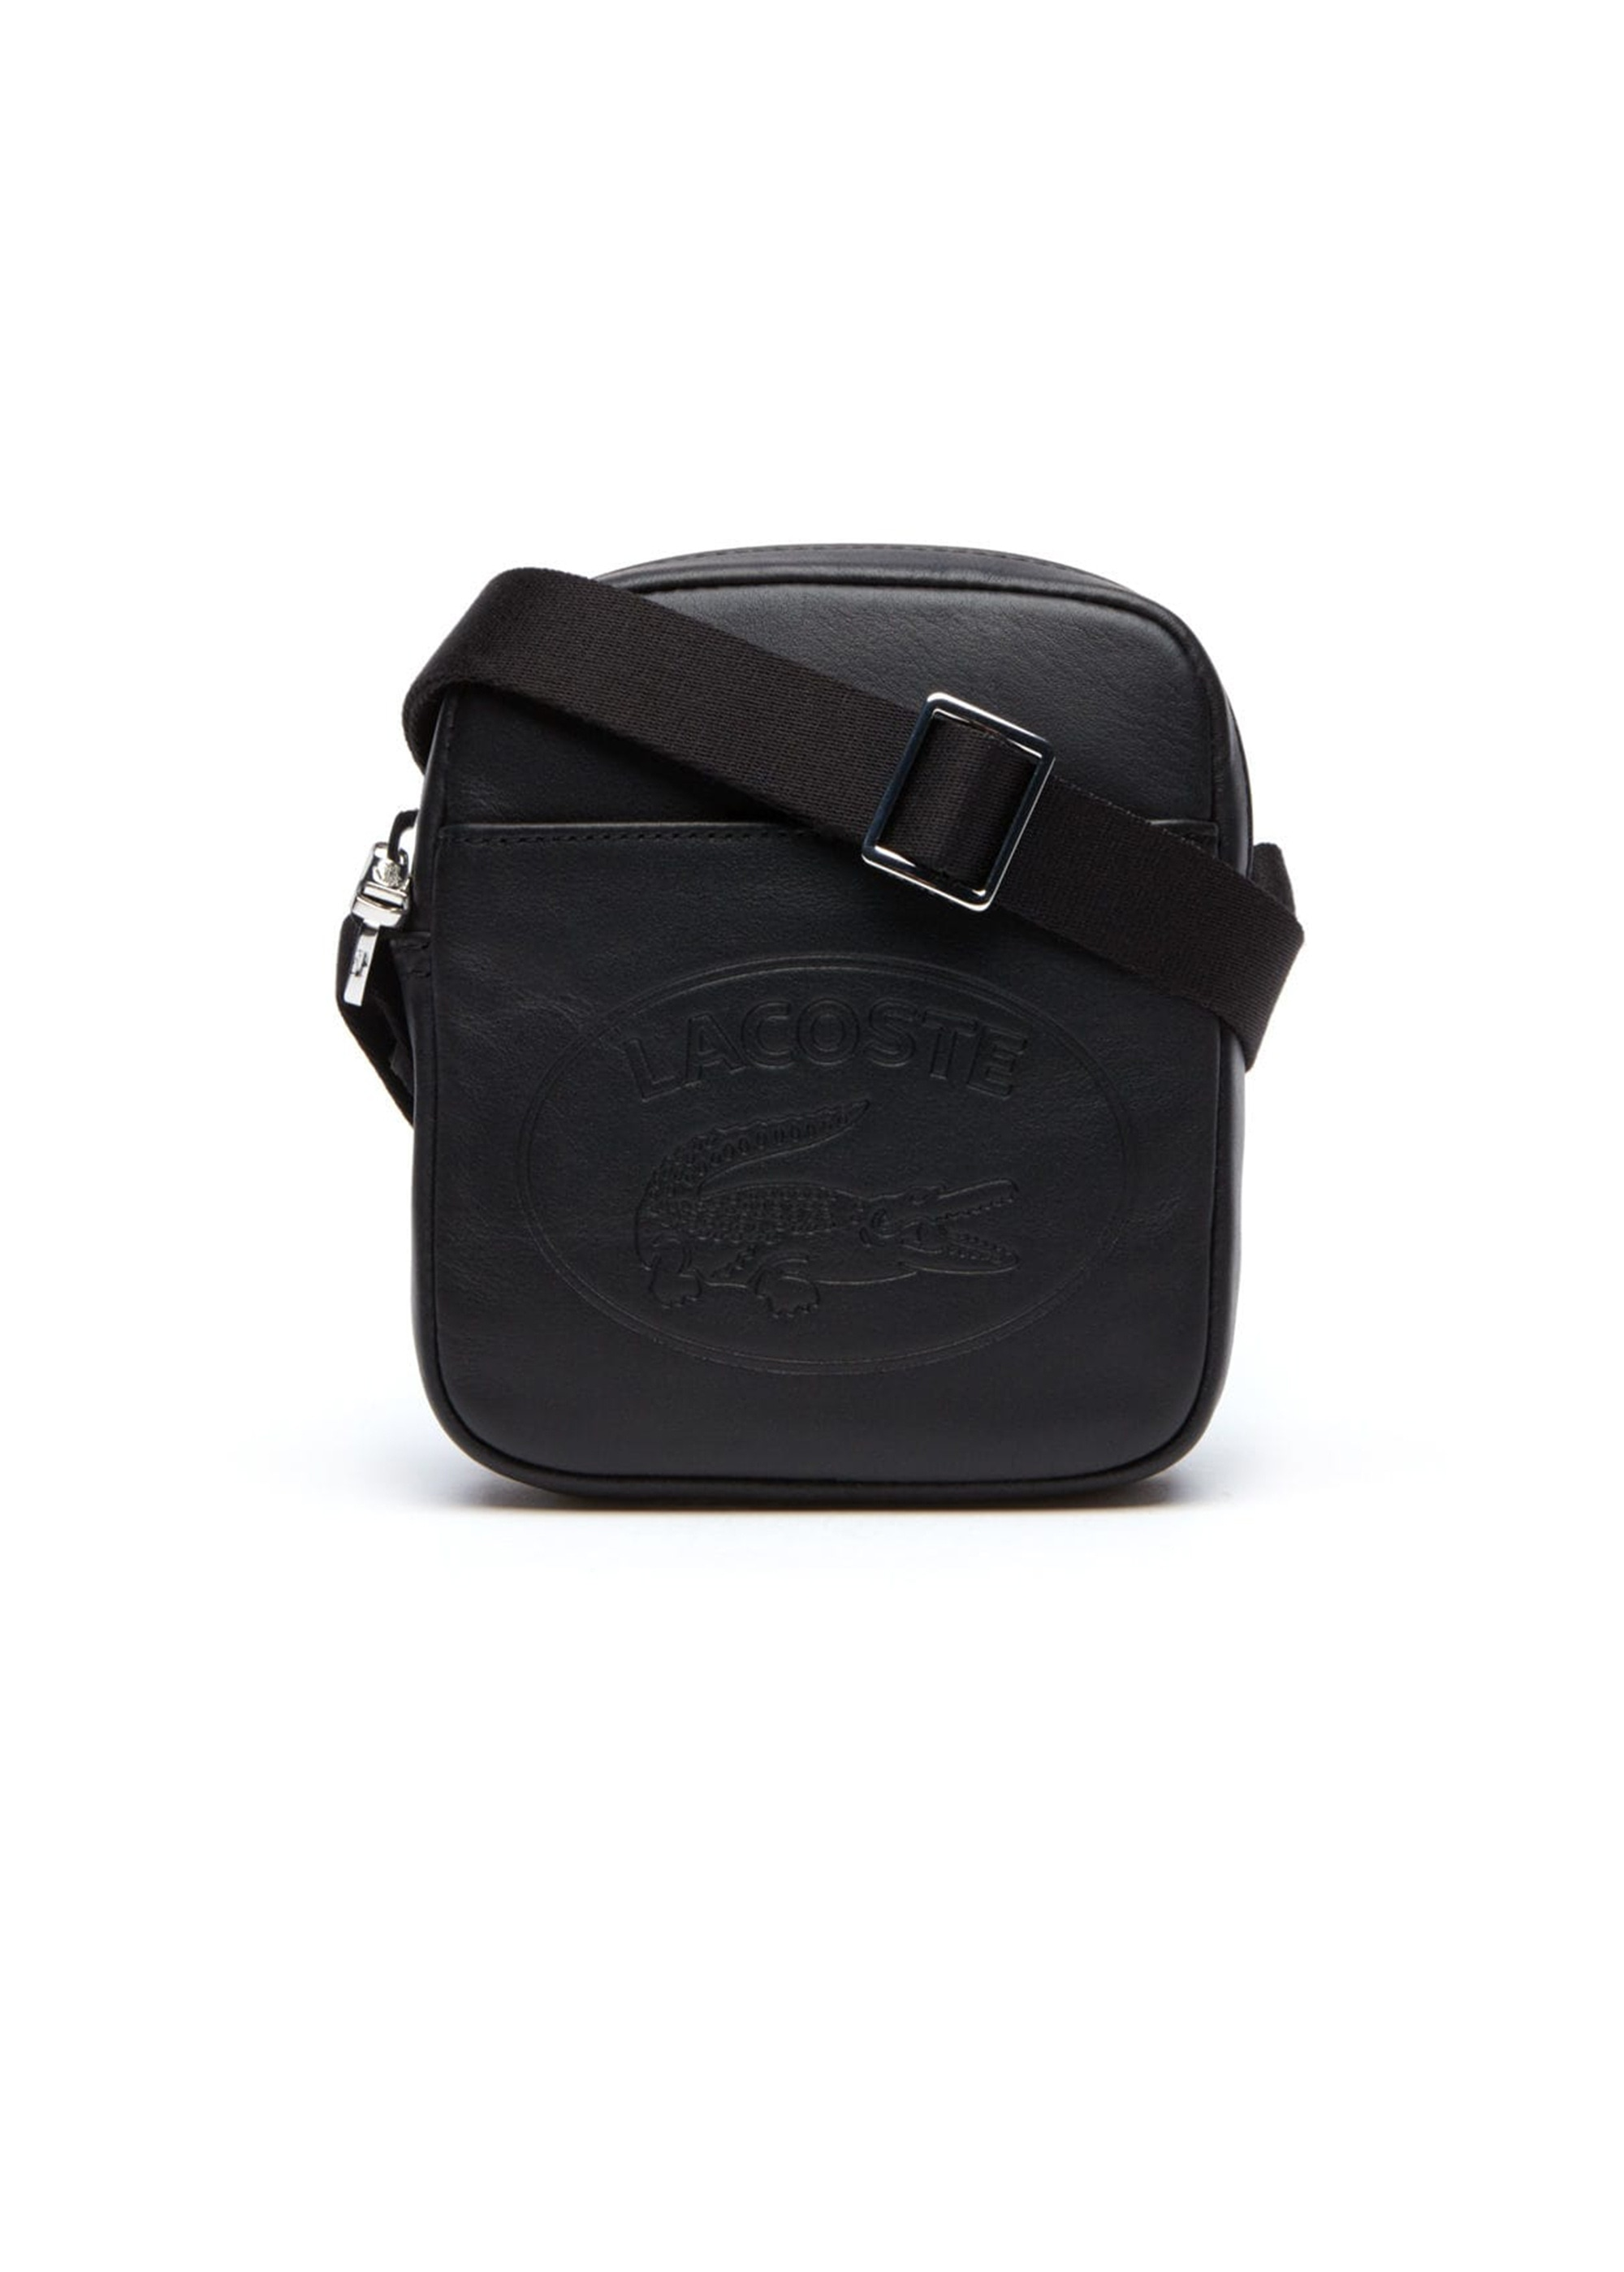 2b7fc044 Lacoste XS Vertical Camera Bag - Black